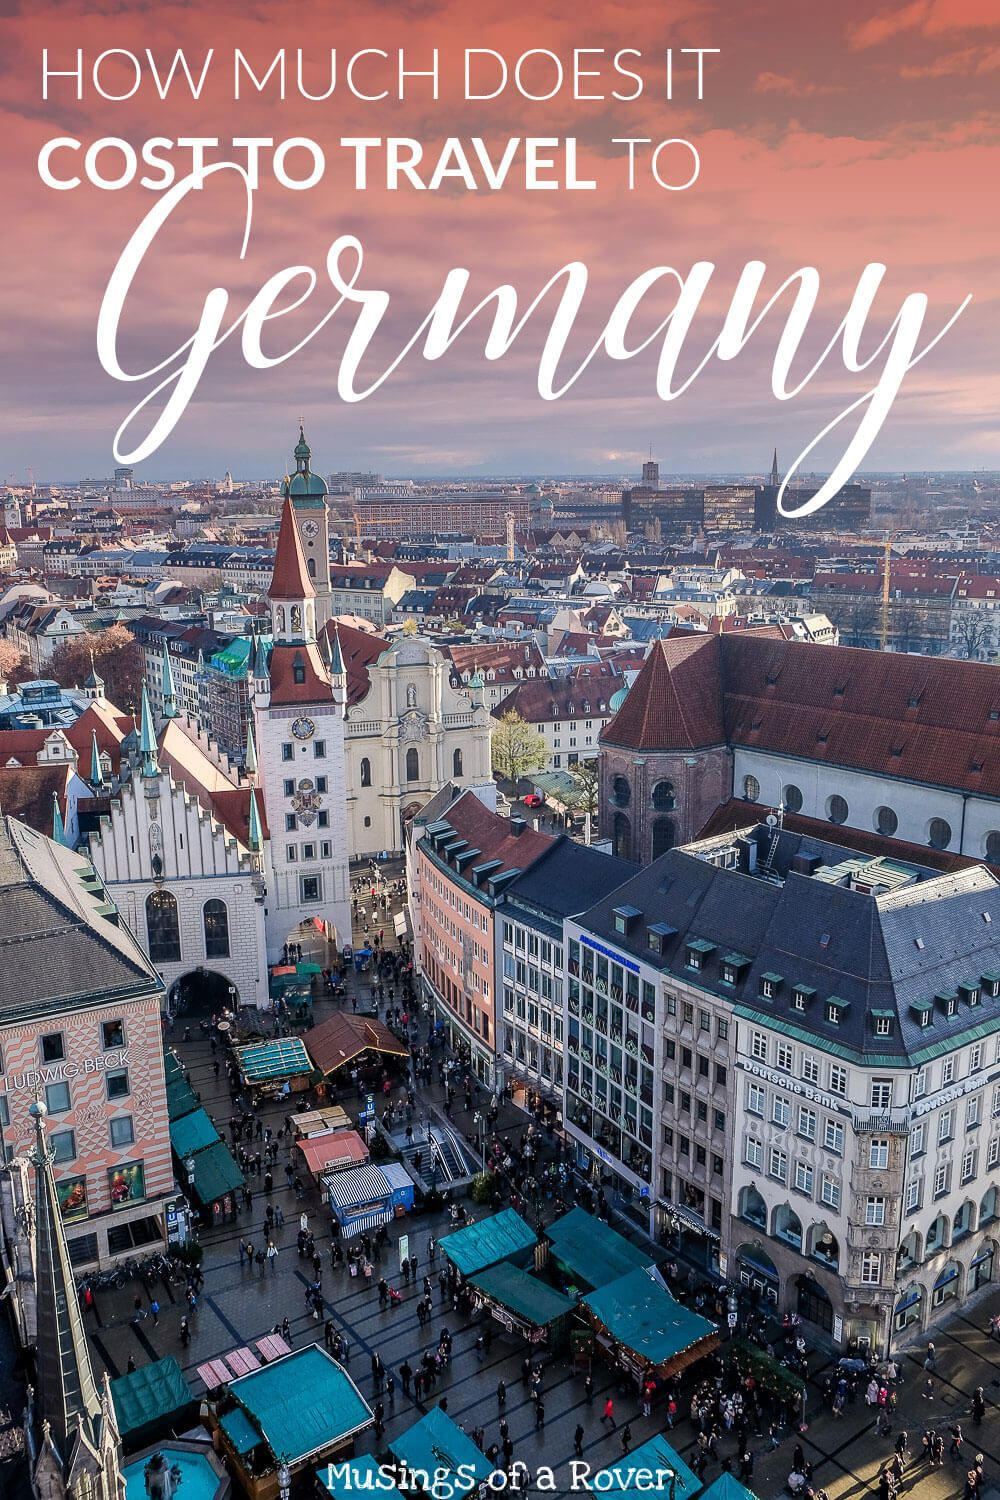 Are you headed to Germany in December to visit the Christmas Markets? This is a wonderful and magical time of year and it's definitely one of the best ways to experience Christmas. But how much does it cost to go to Germany? How much money should you budget? I recorded all of my expenses from my 10 day trip to Germany and put them here for you to see!